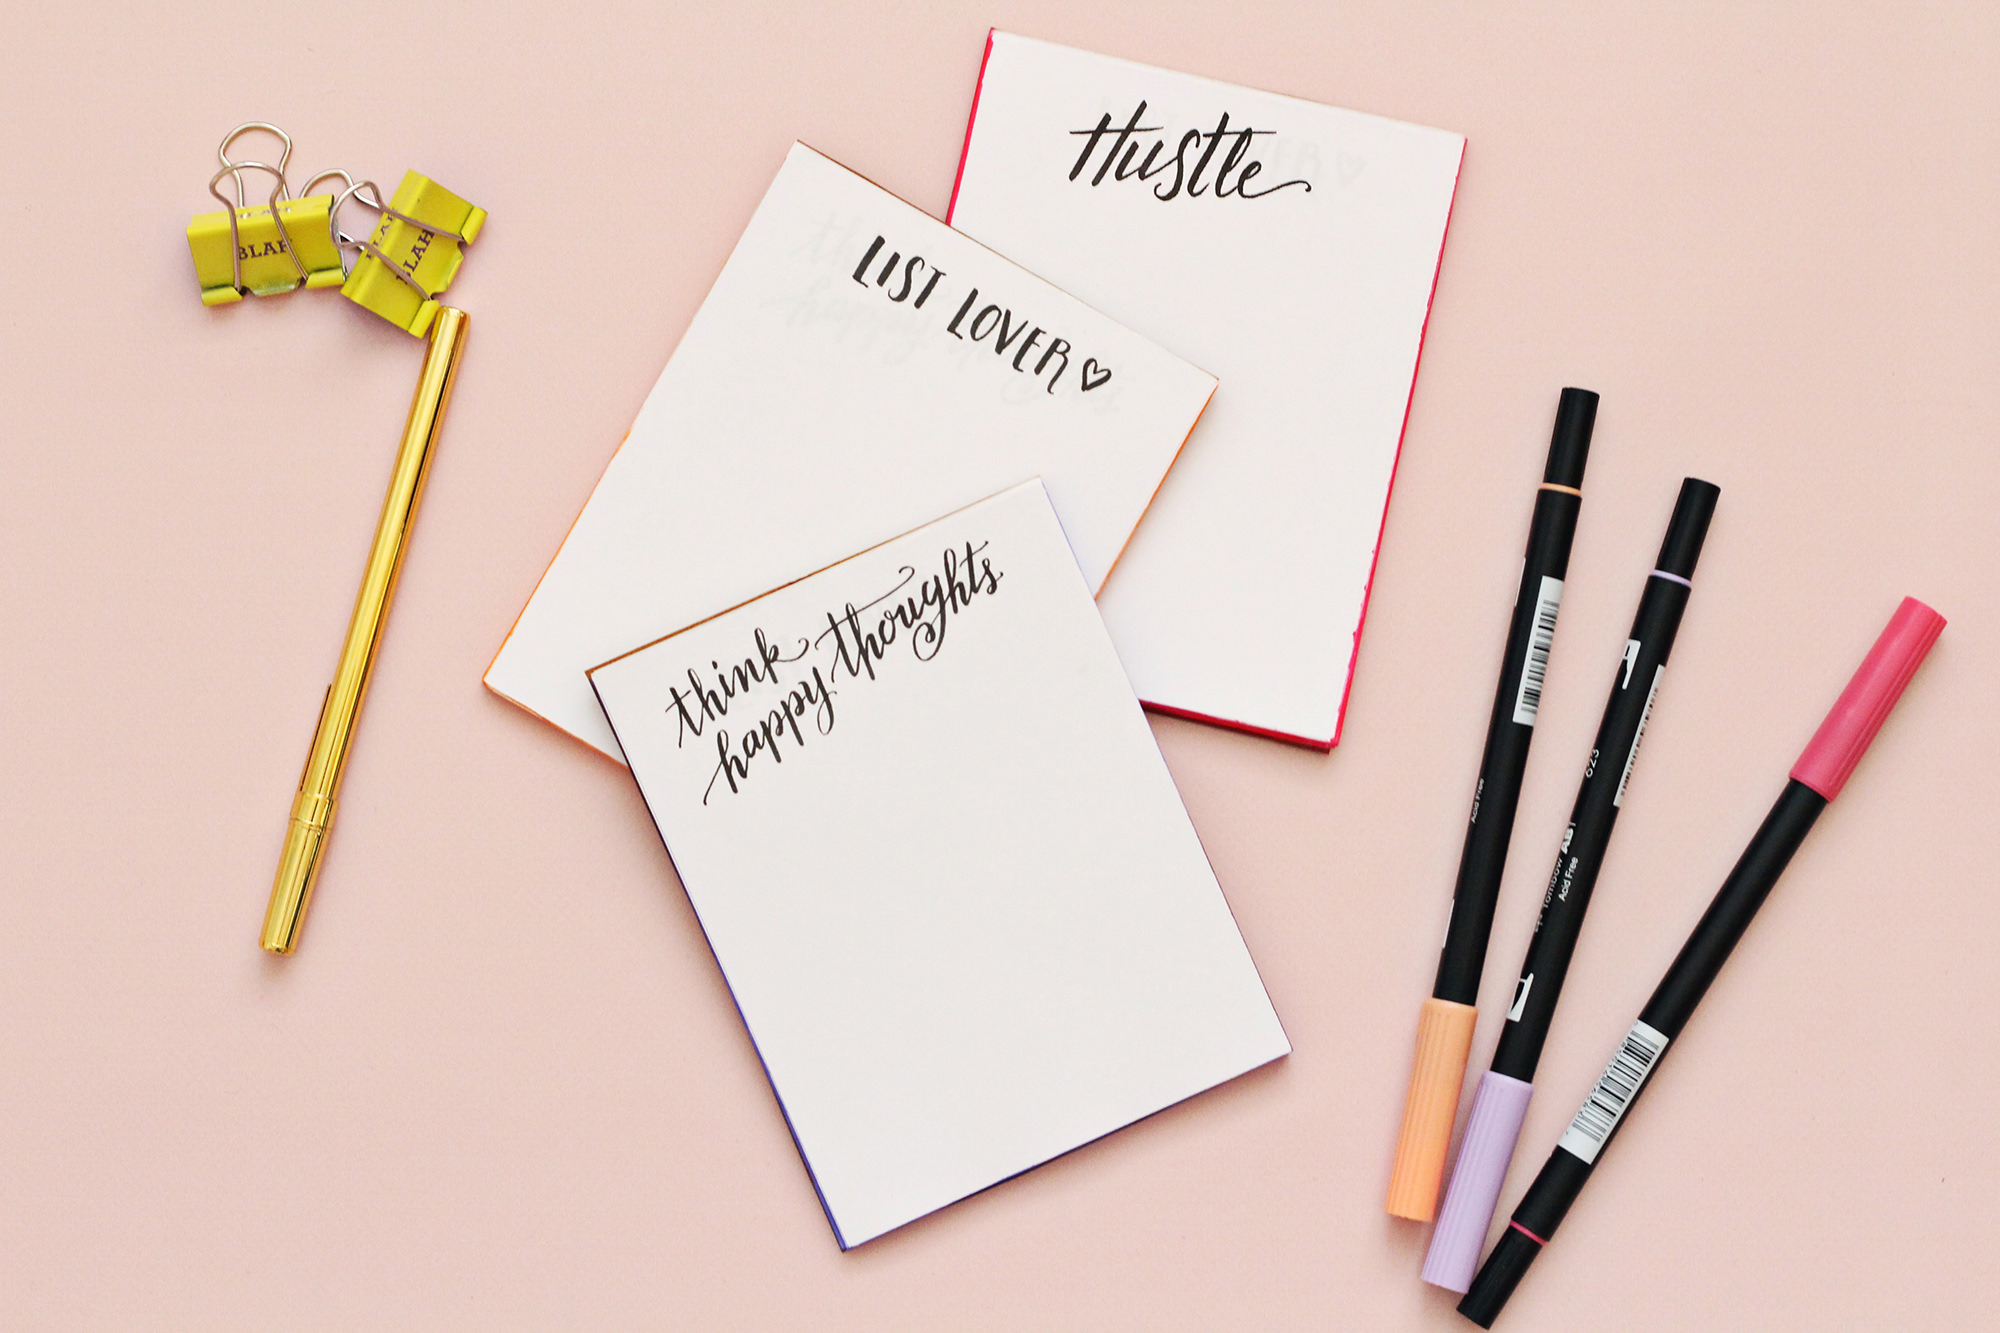 DIY notepads will give a bit of motivation on your desk to start the new year